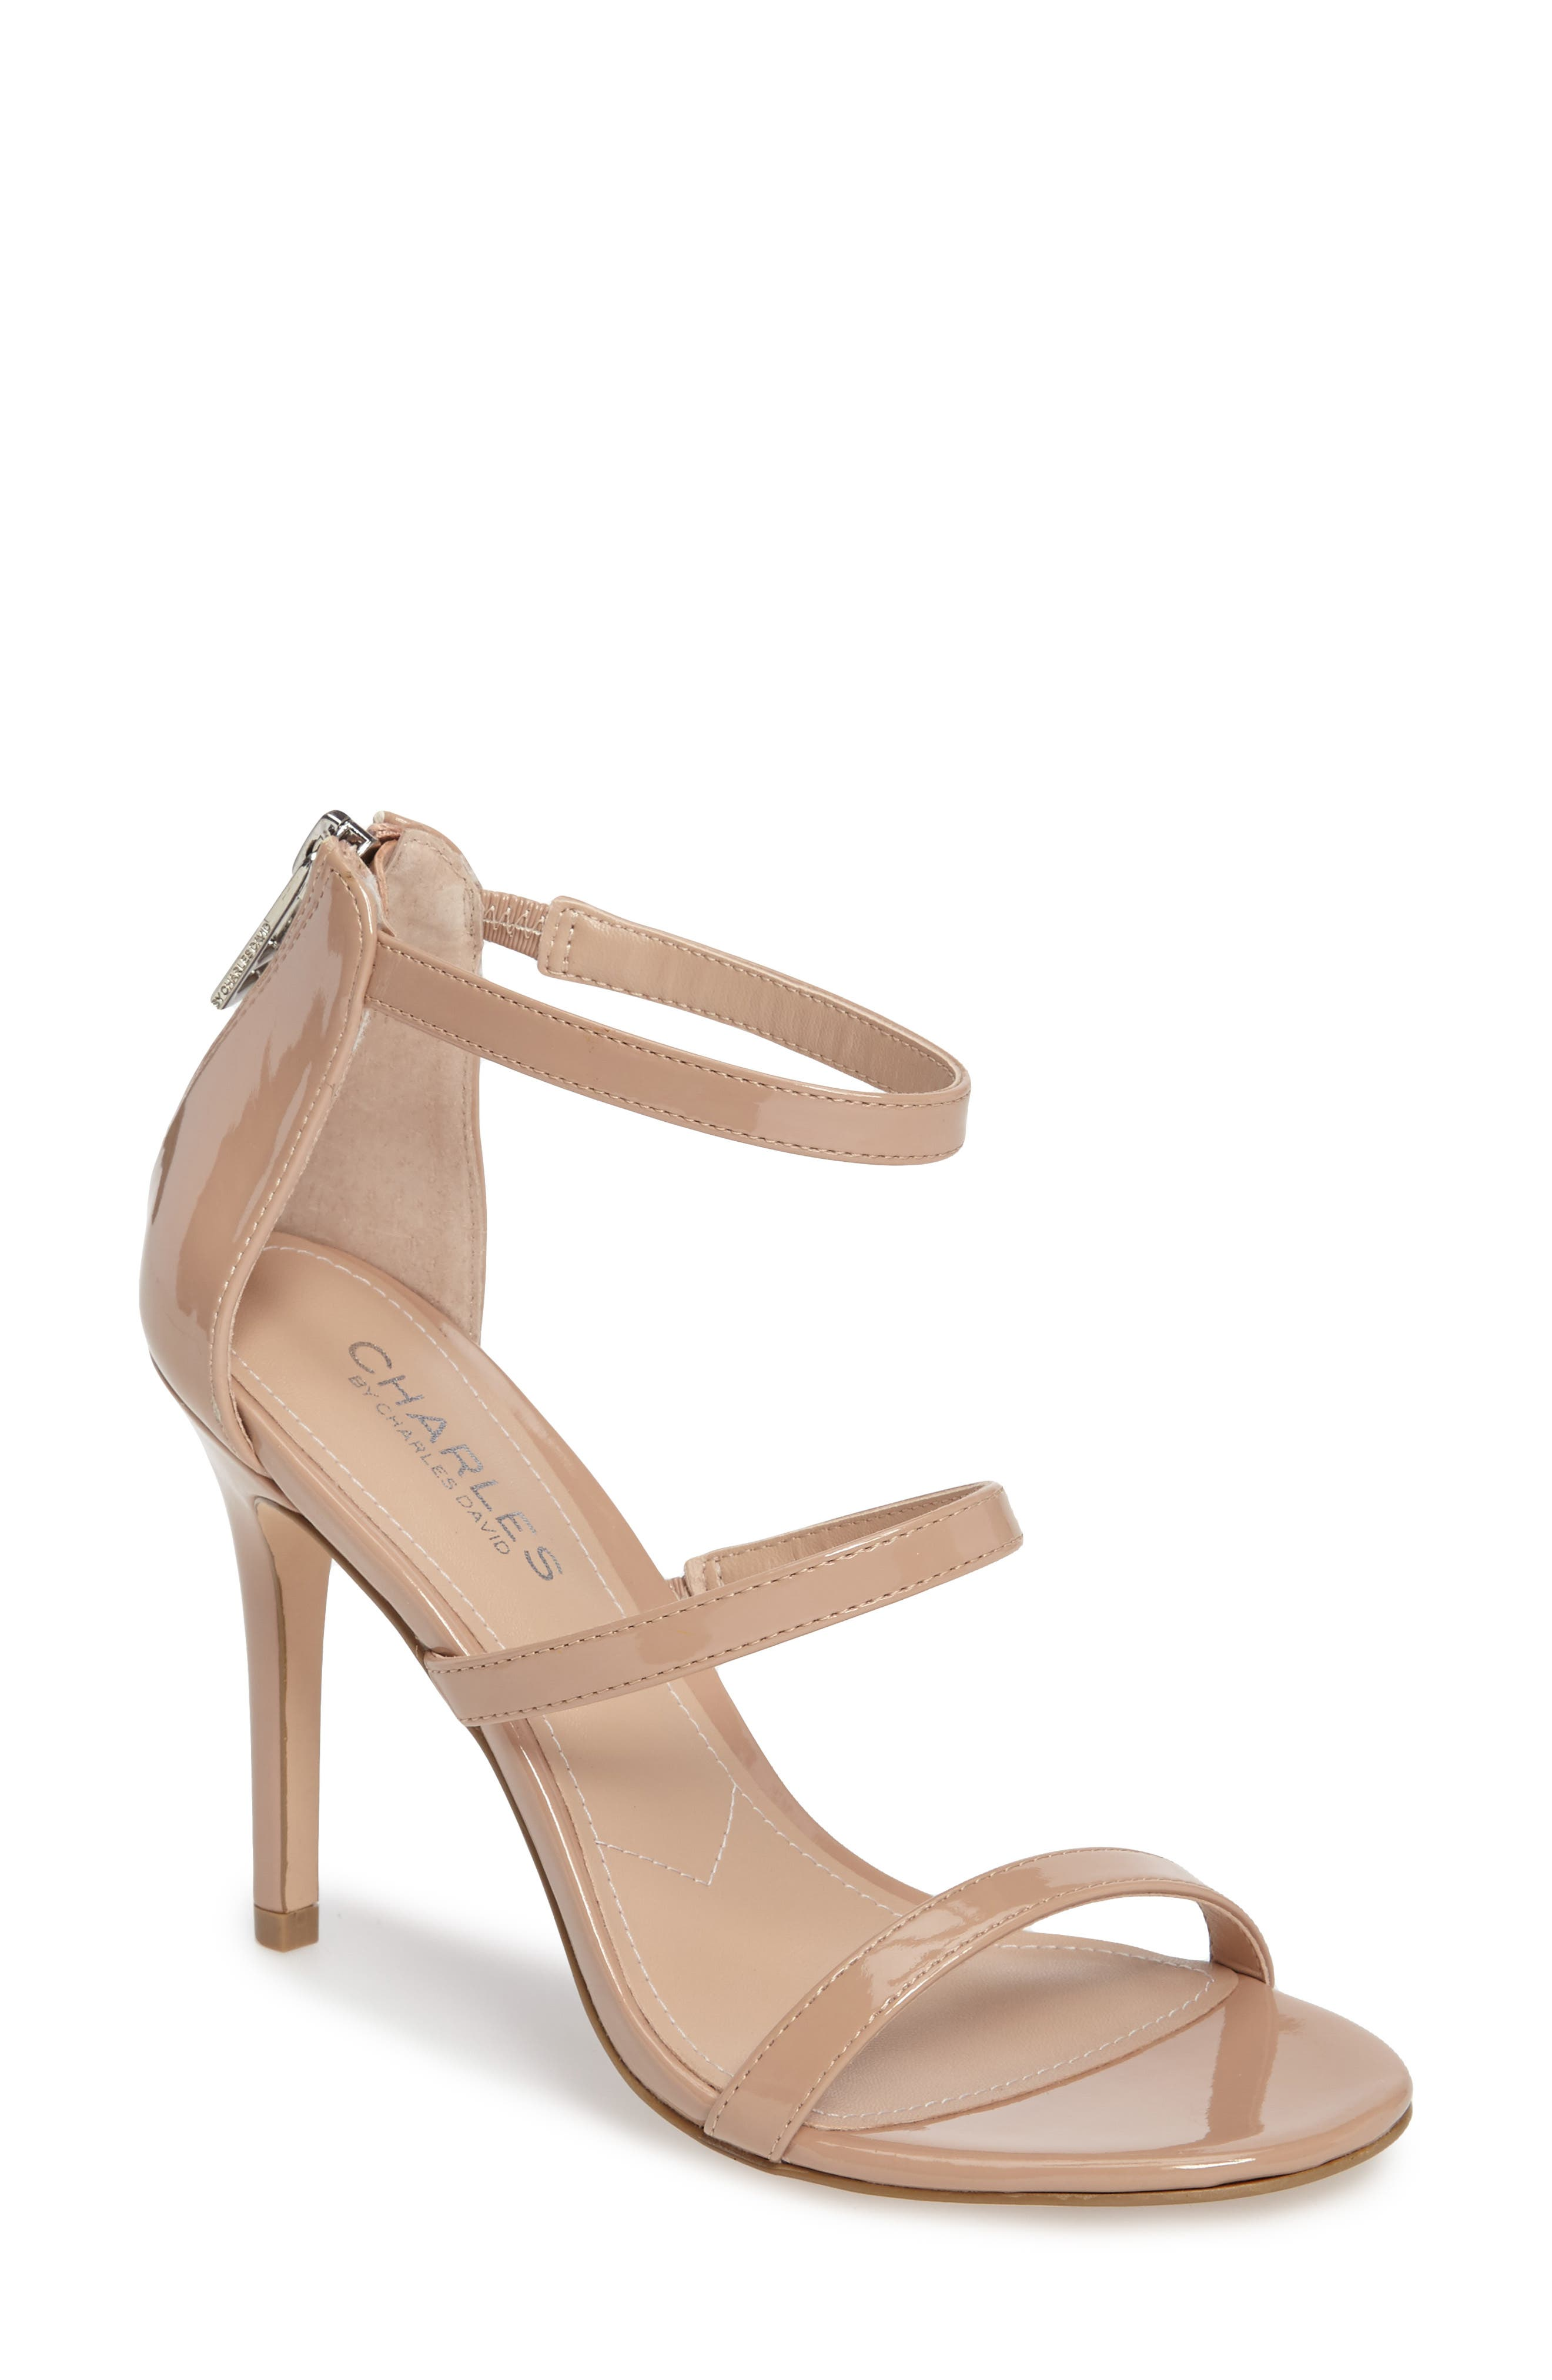 Ria Strappy Sandal,                             Main thumbnail 1, color,                             Nude Patent Leather